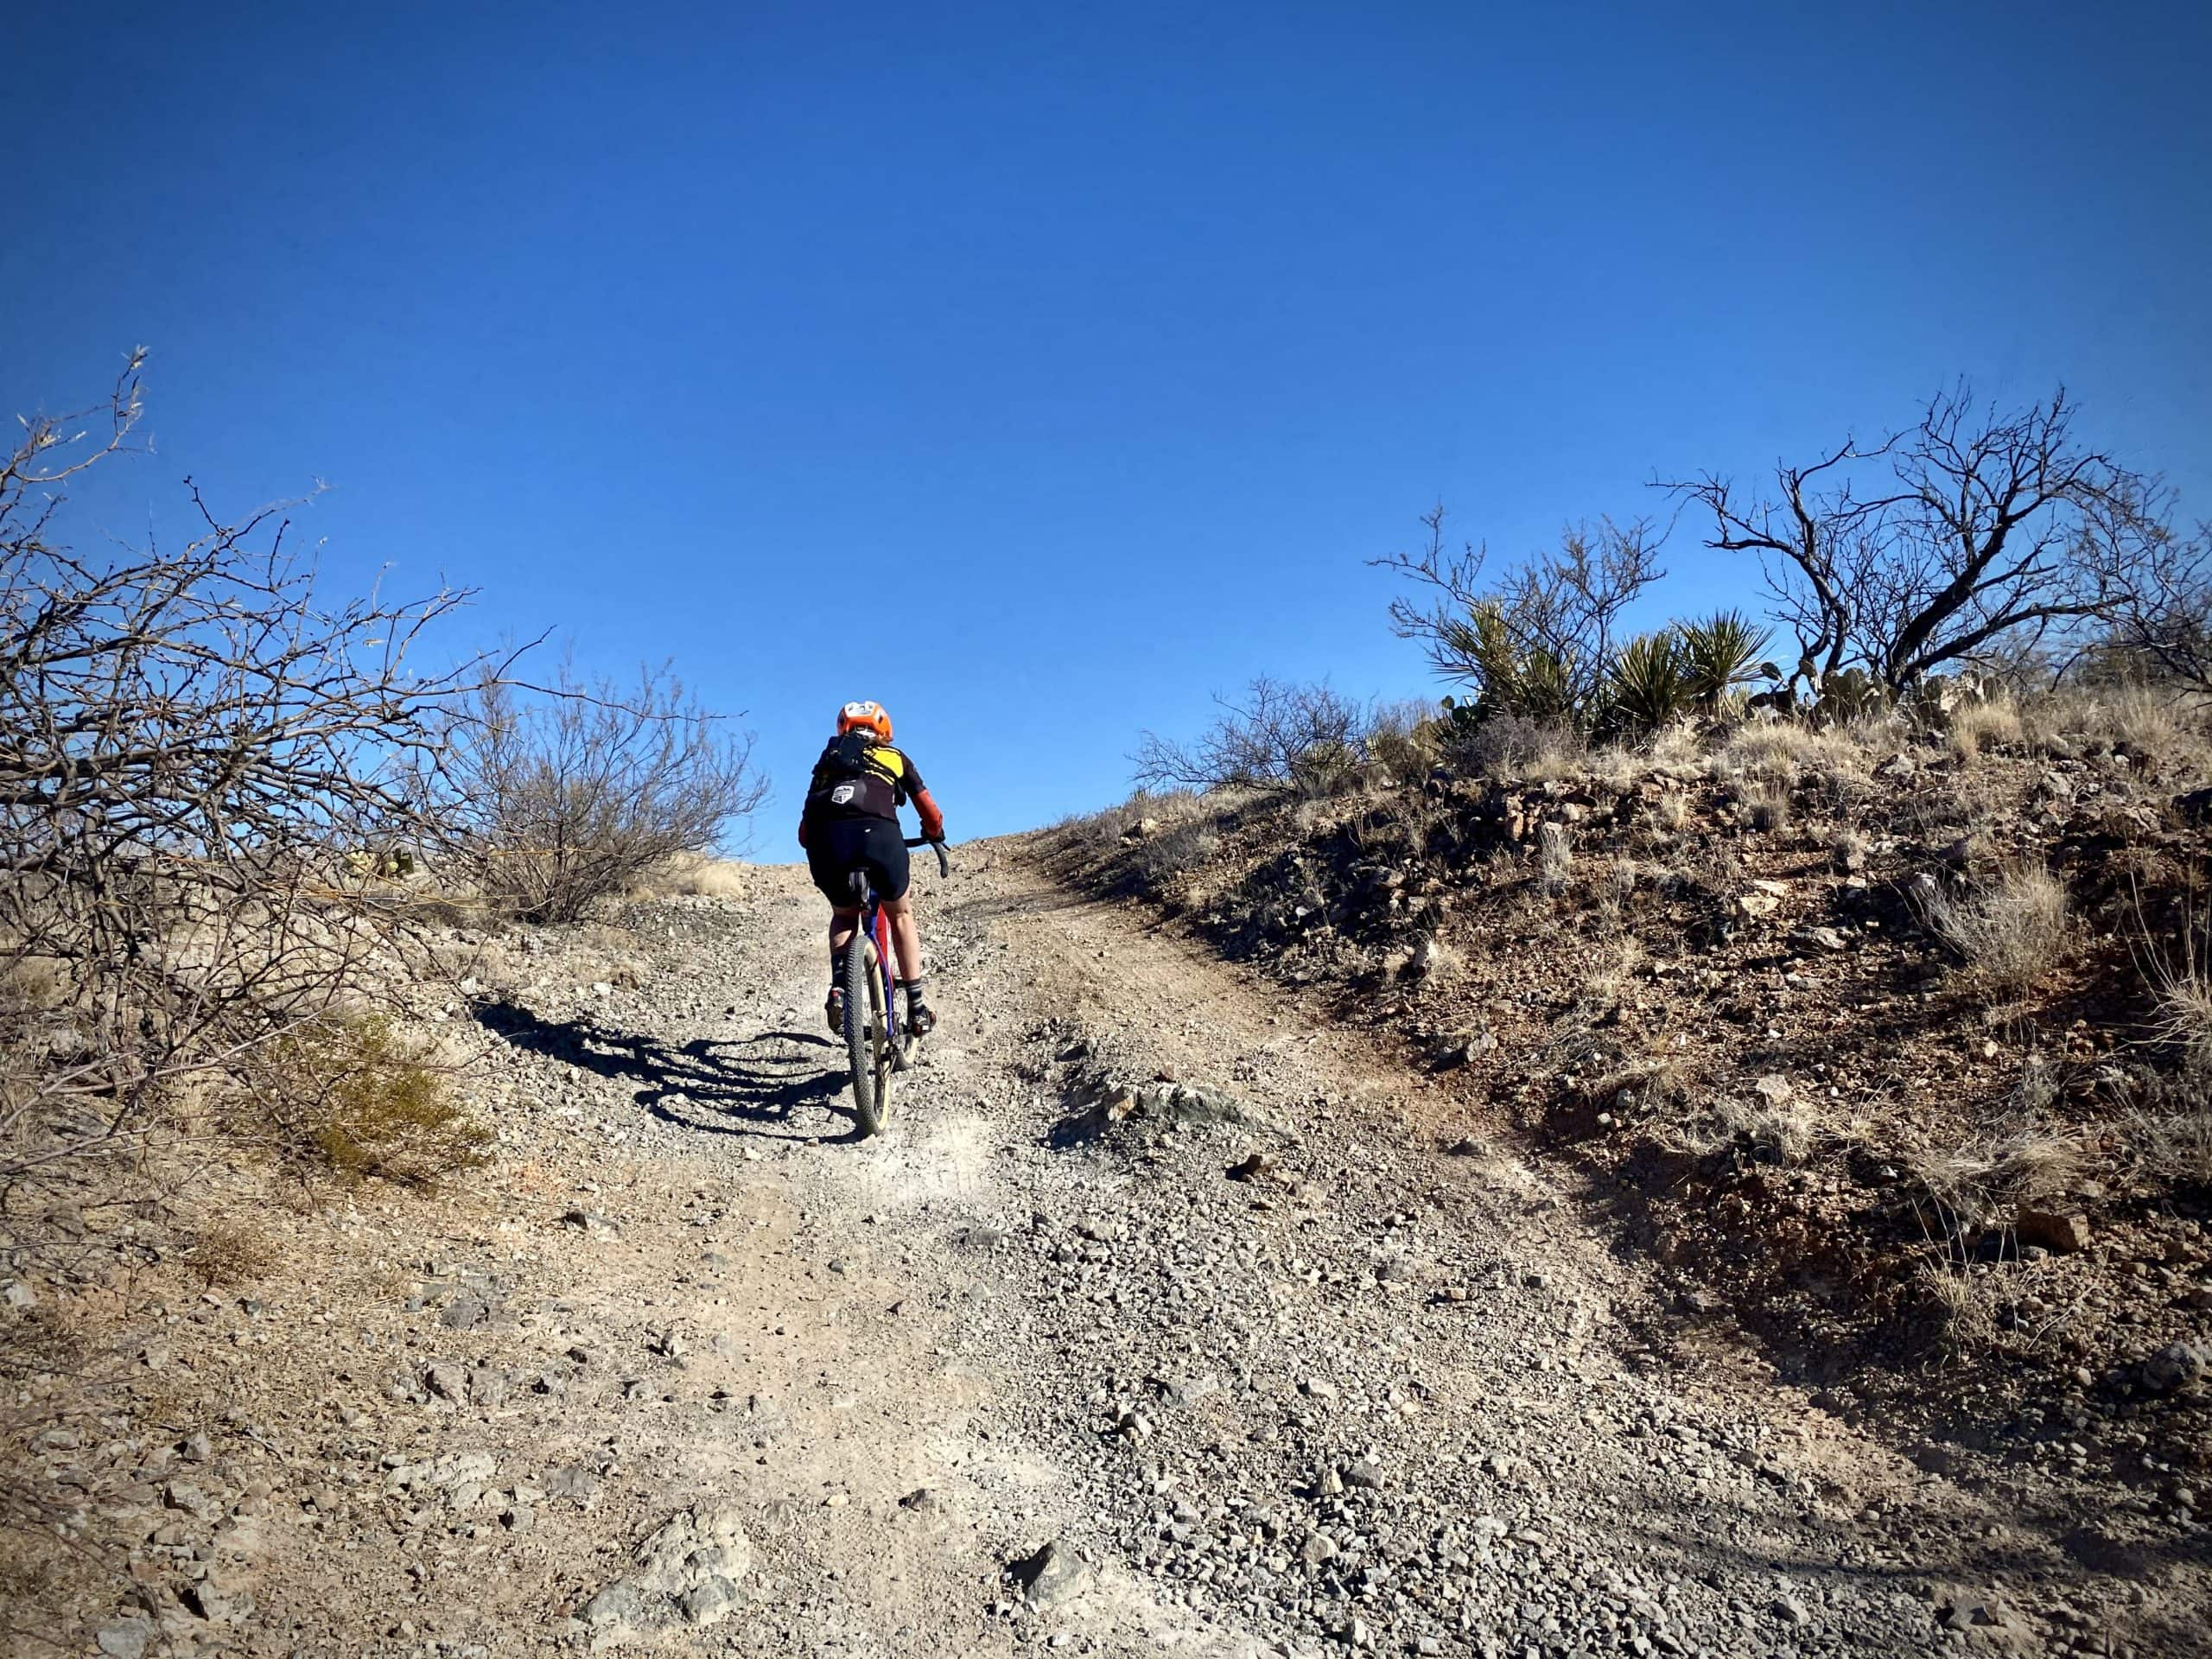 Gravel Girl climbing a rugged, loose section of gravel road.